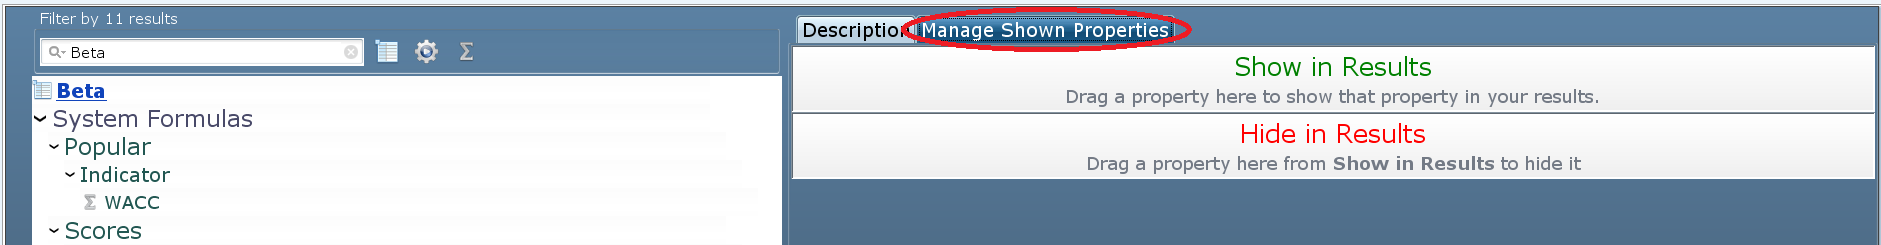 Manage shown properties